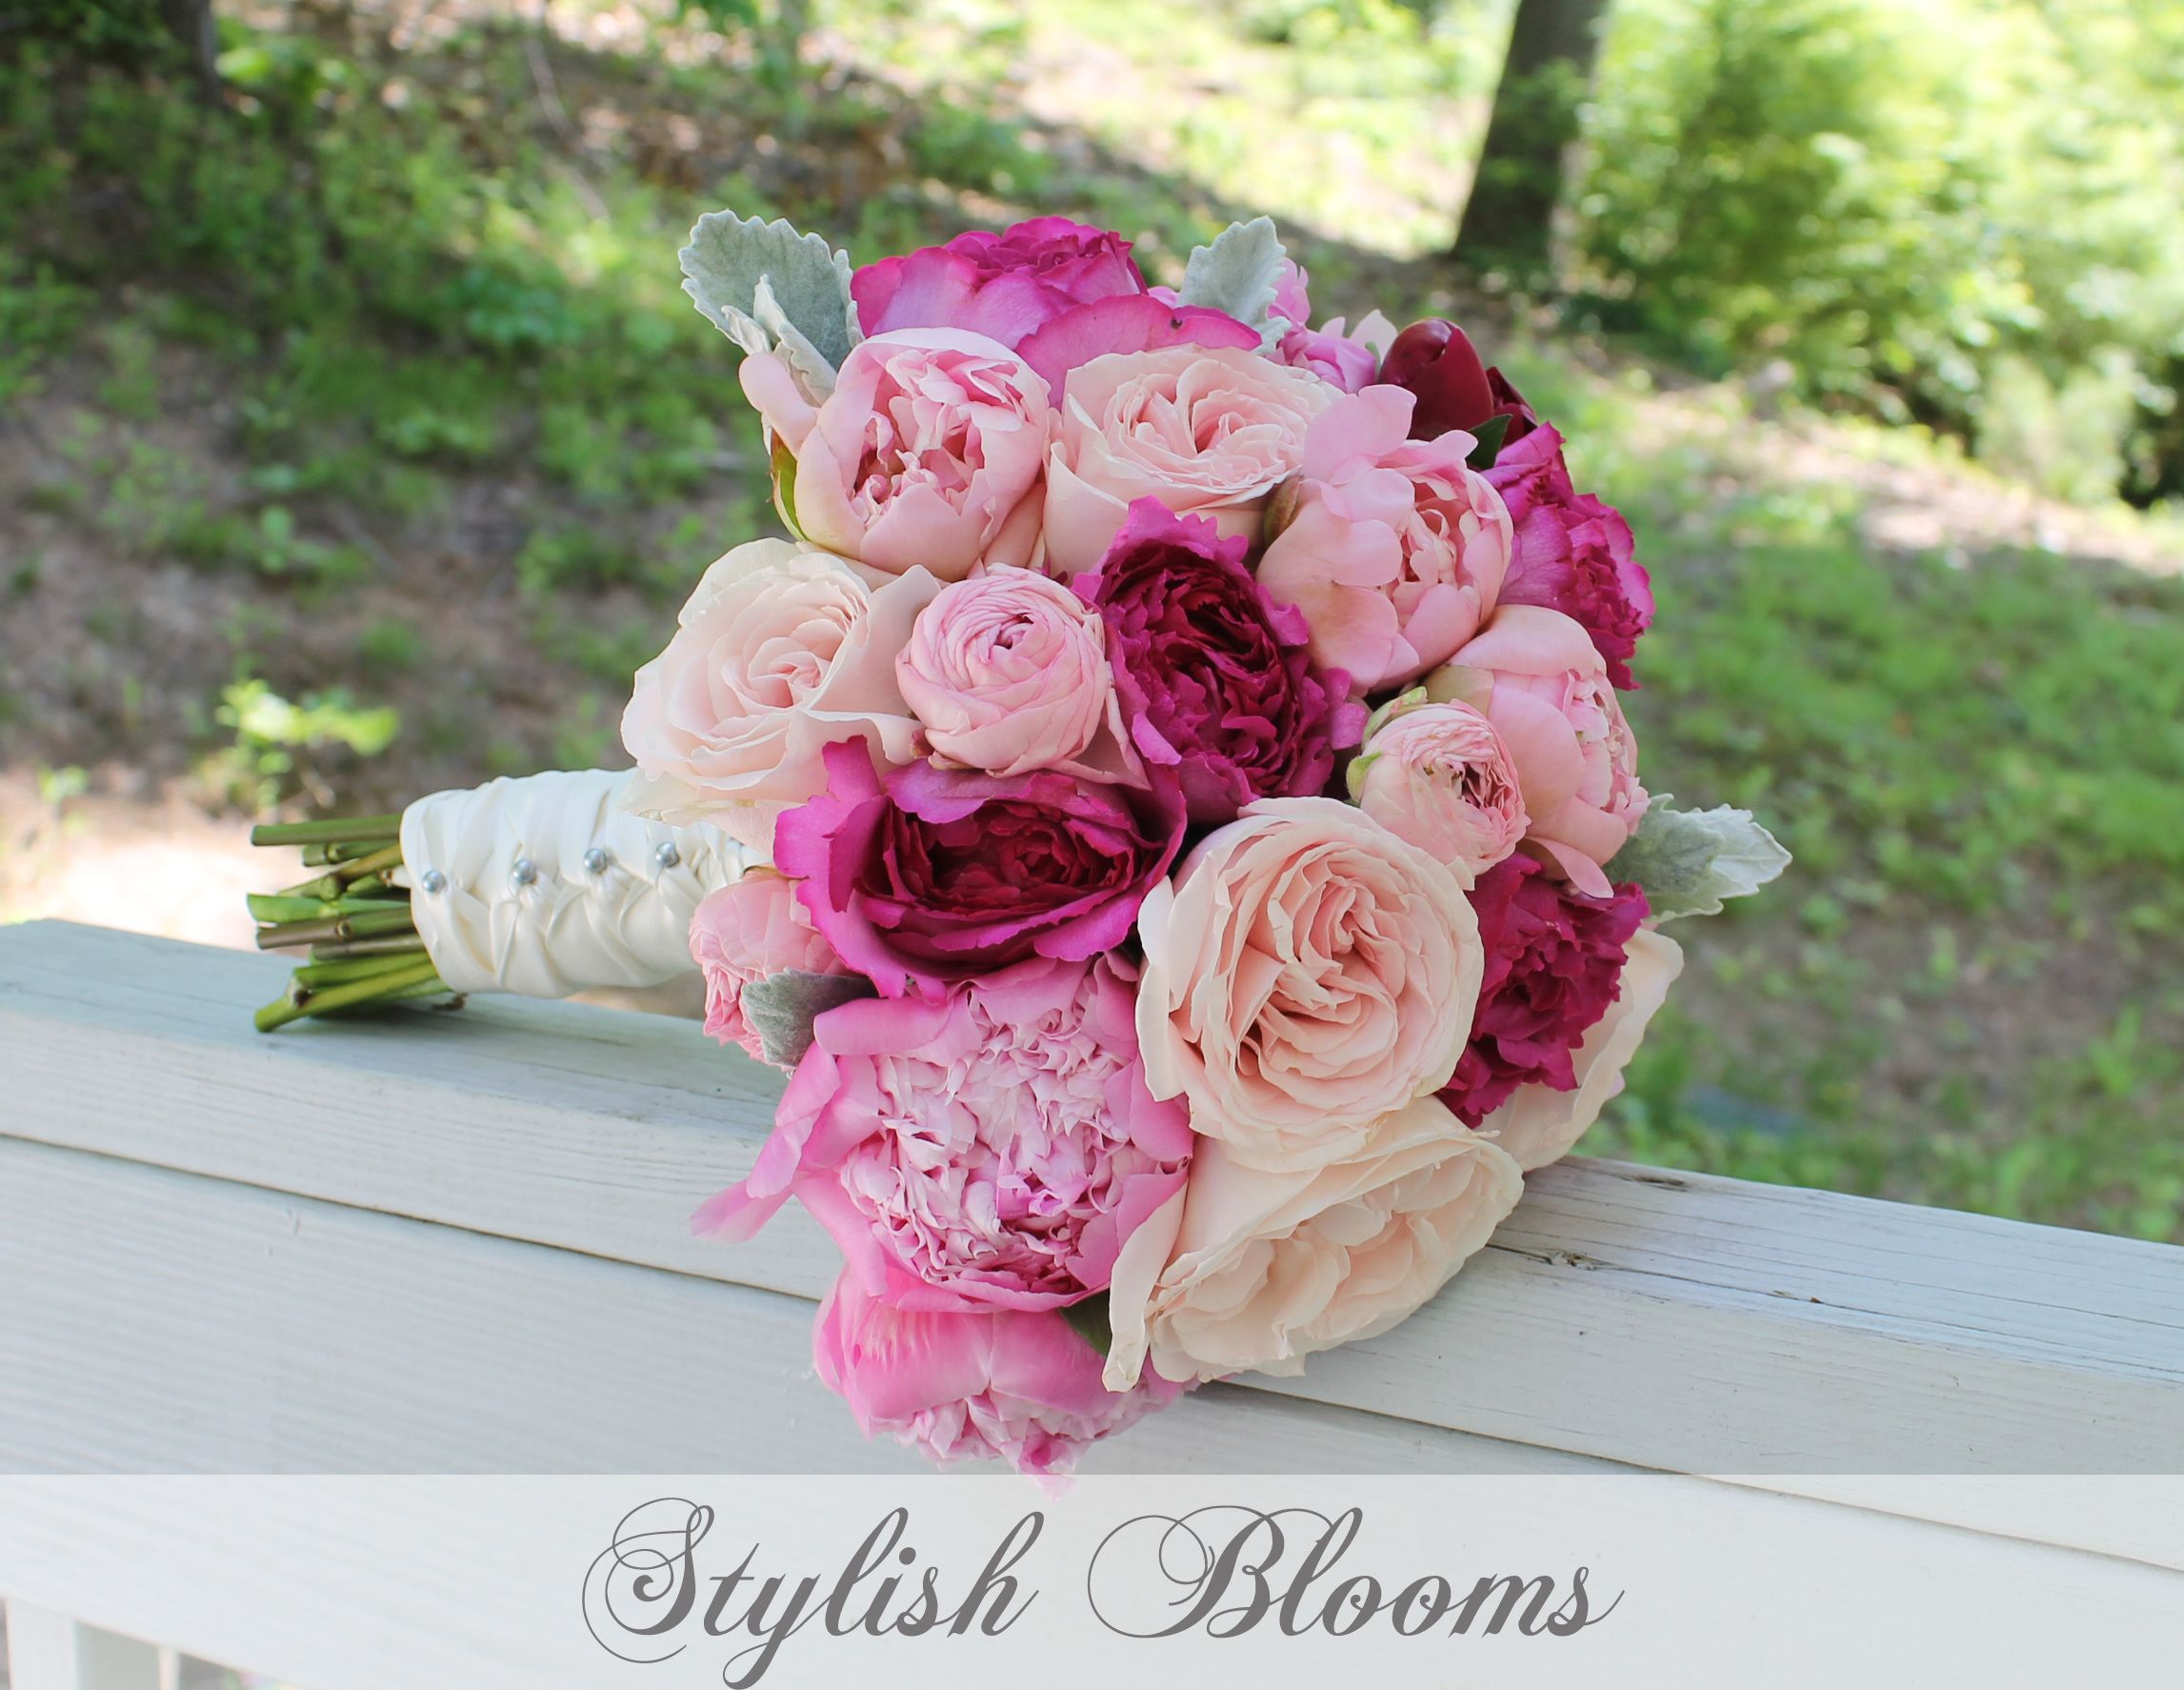 hot pink and light pink garden roses, peonies and ranunculus